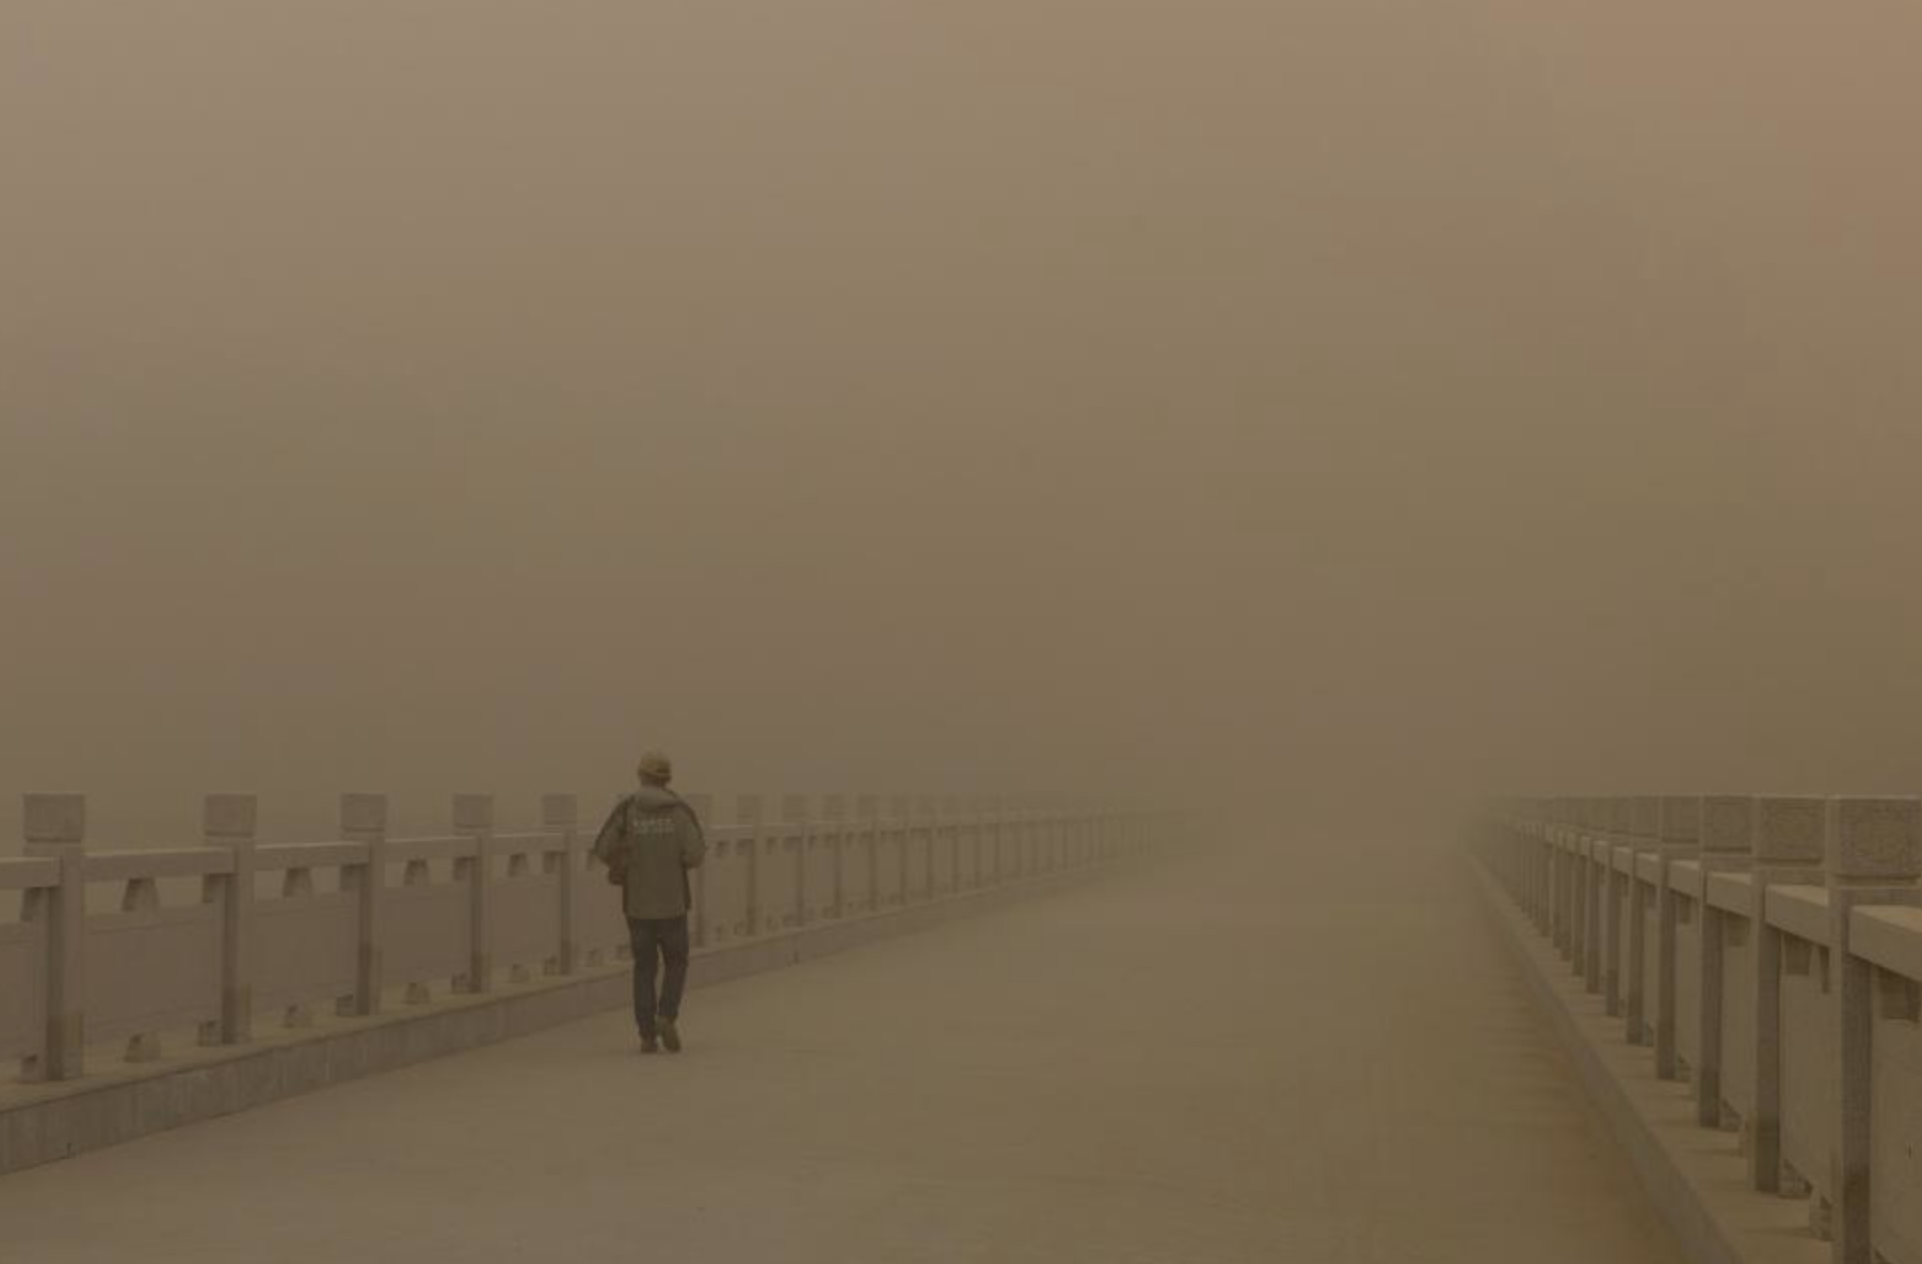 China dust storm